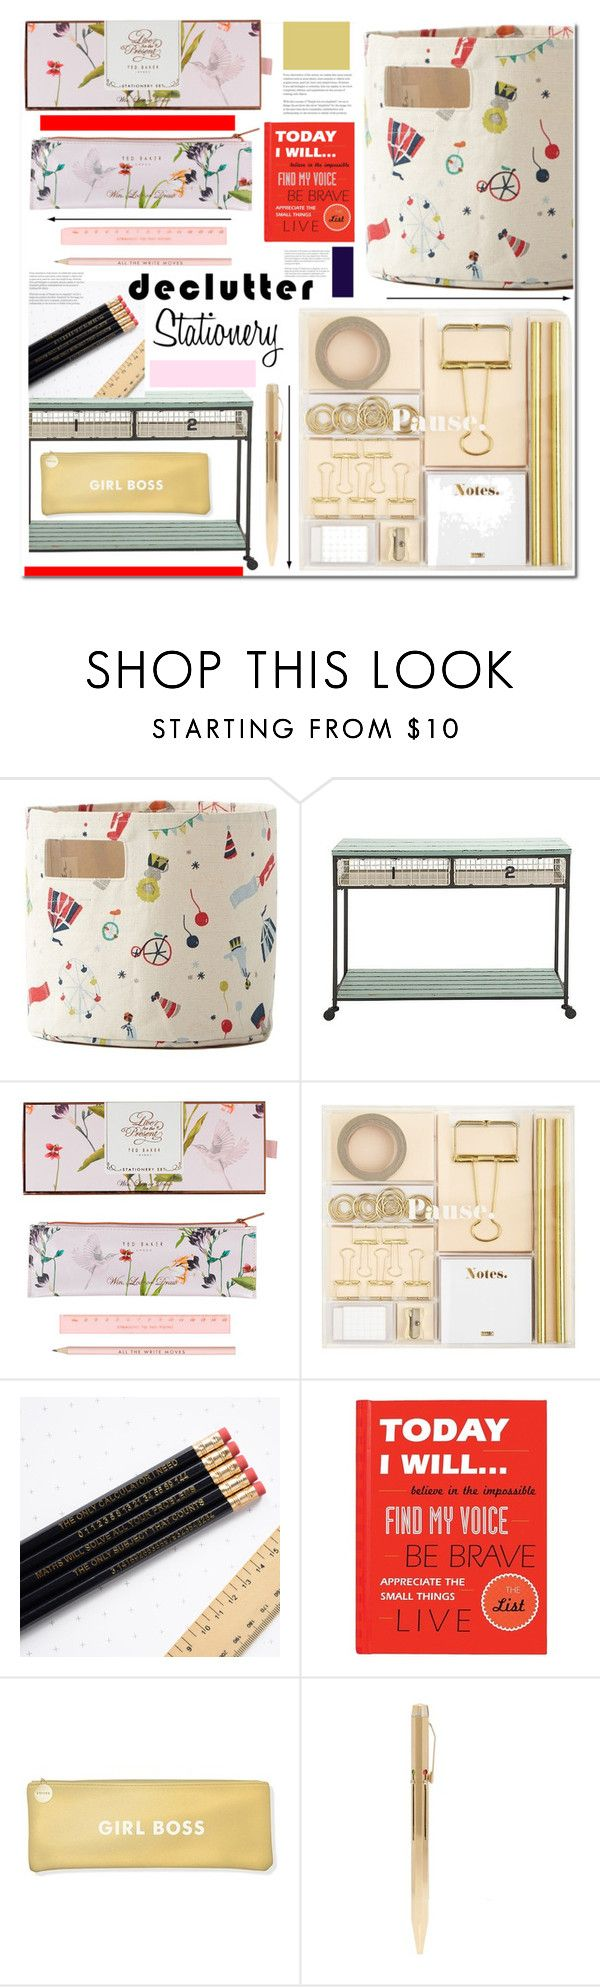 """Decutter Stationery"" by sweta-gupta ❤ liked on Polyvore featuring interior, interiors, interior design, home, home decor, interior decorating, Petit Pehr, Benzara, Wild & Wolf and C.R. Gibson"